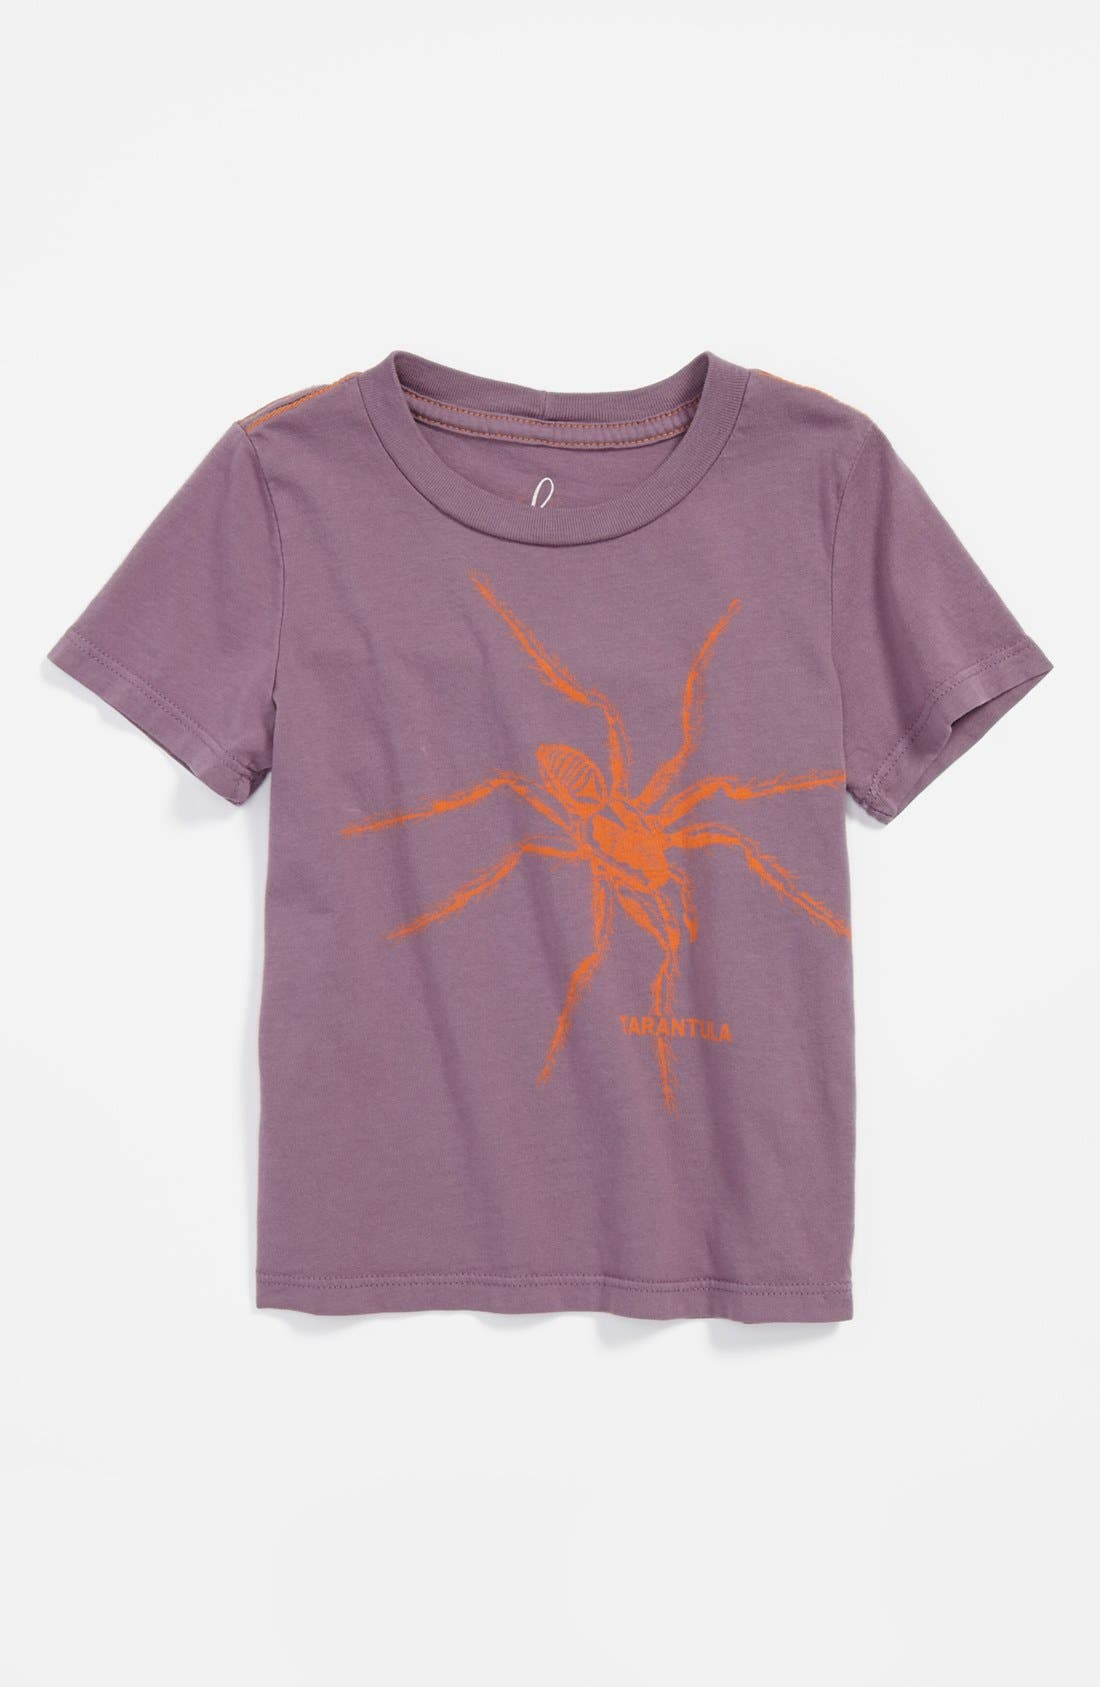 Alternate Image 1 Selected - Peek 'Spider' T-Shirt (Baby Boys)